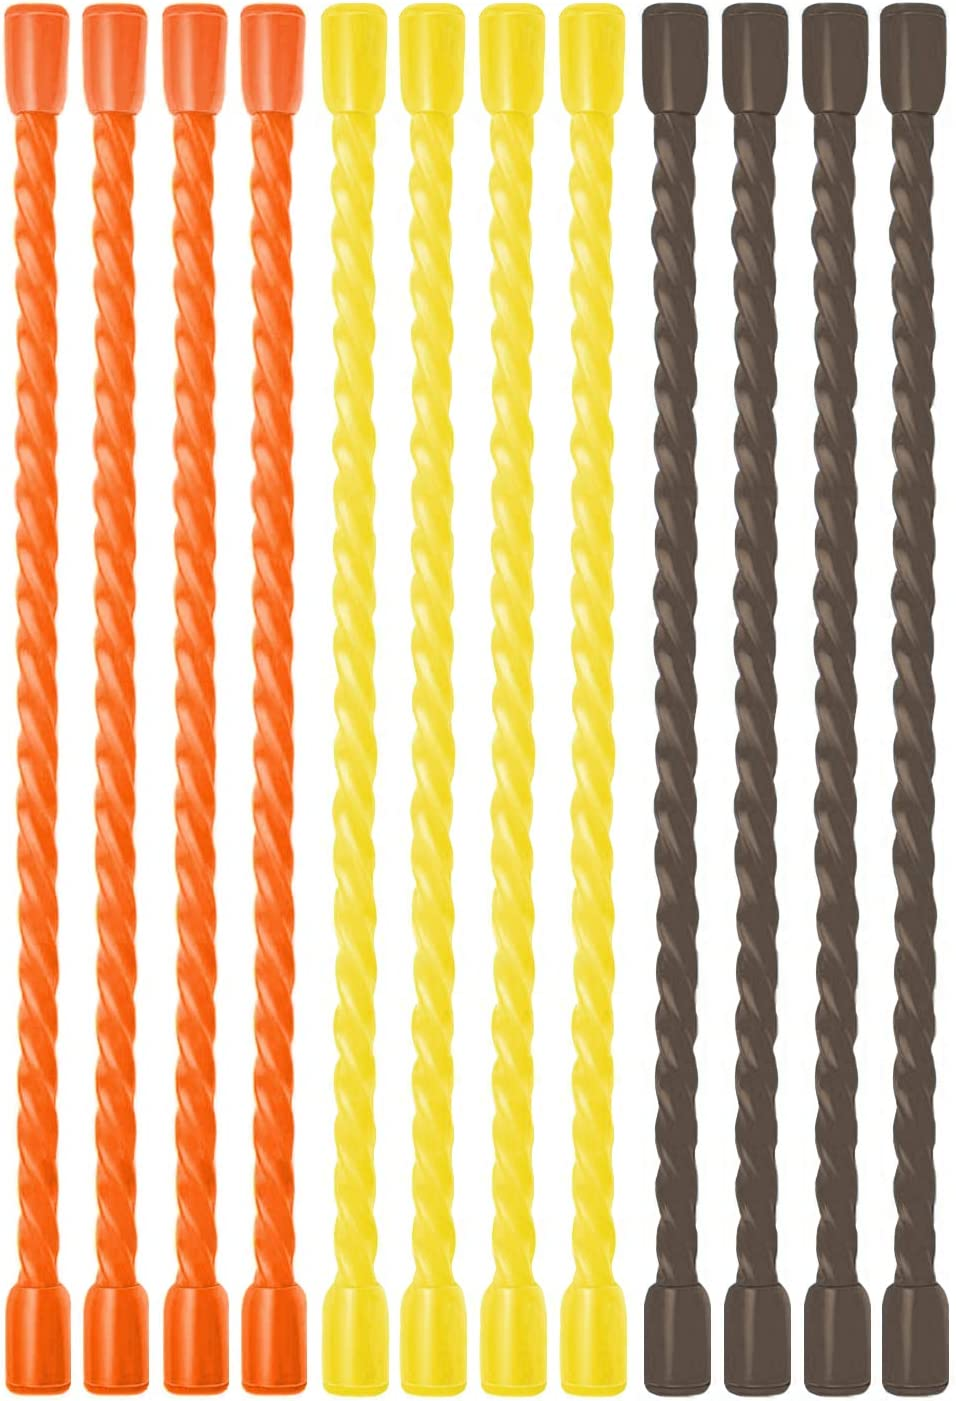 VALORILIMIT 12-inch Reusable Silicone Twist Tie, Pack of 12, Bendable Gear Silicone Ties, Cable Tie Straps, Multi-Purpose for Home, Office, Travel, Garden - Yellow Orange Grey